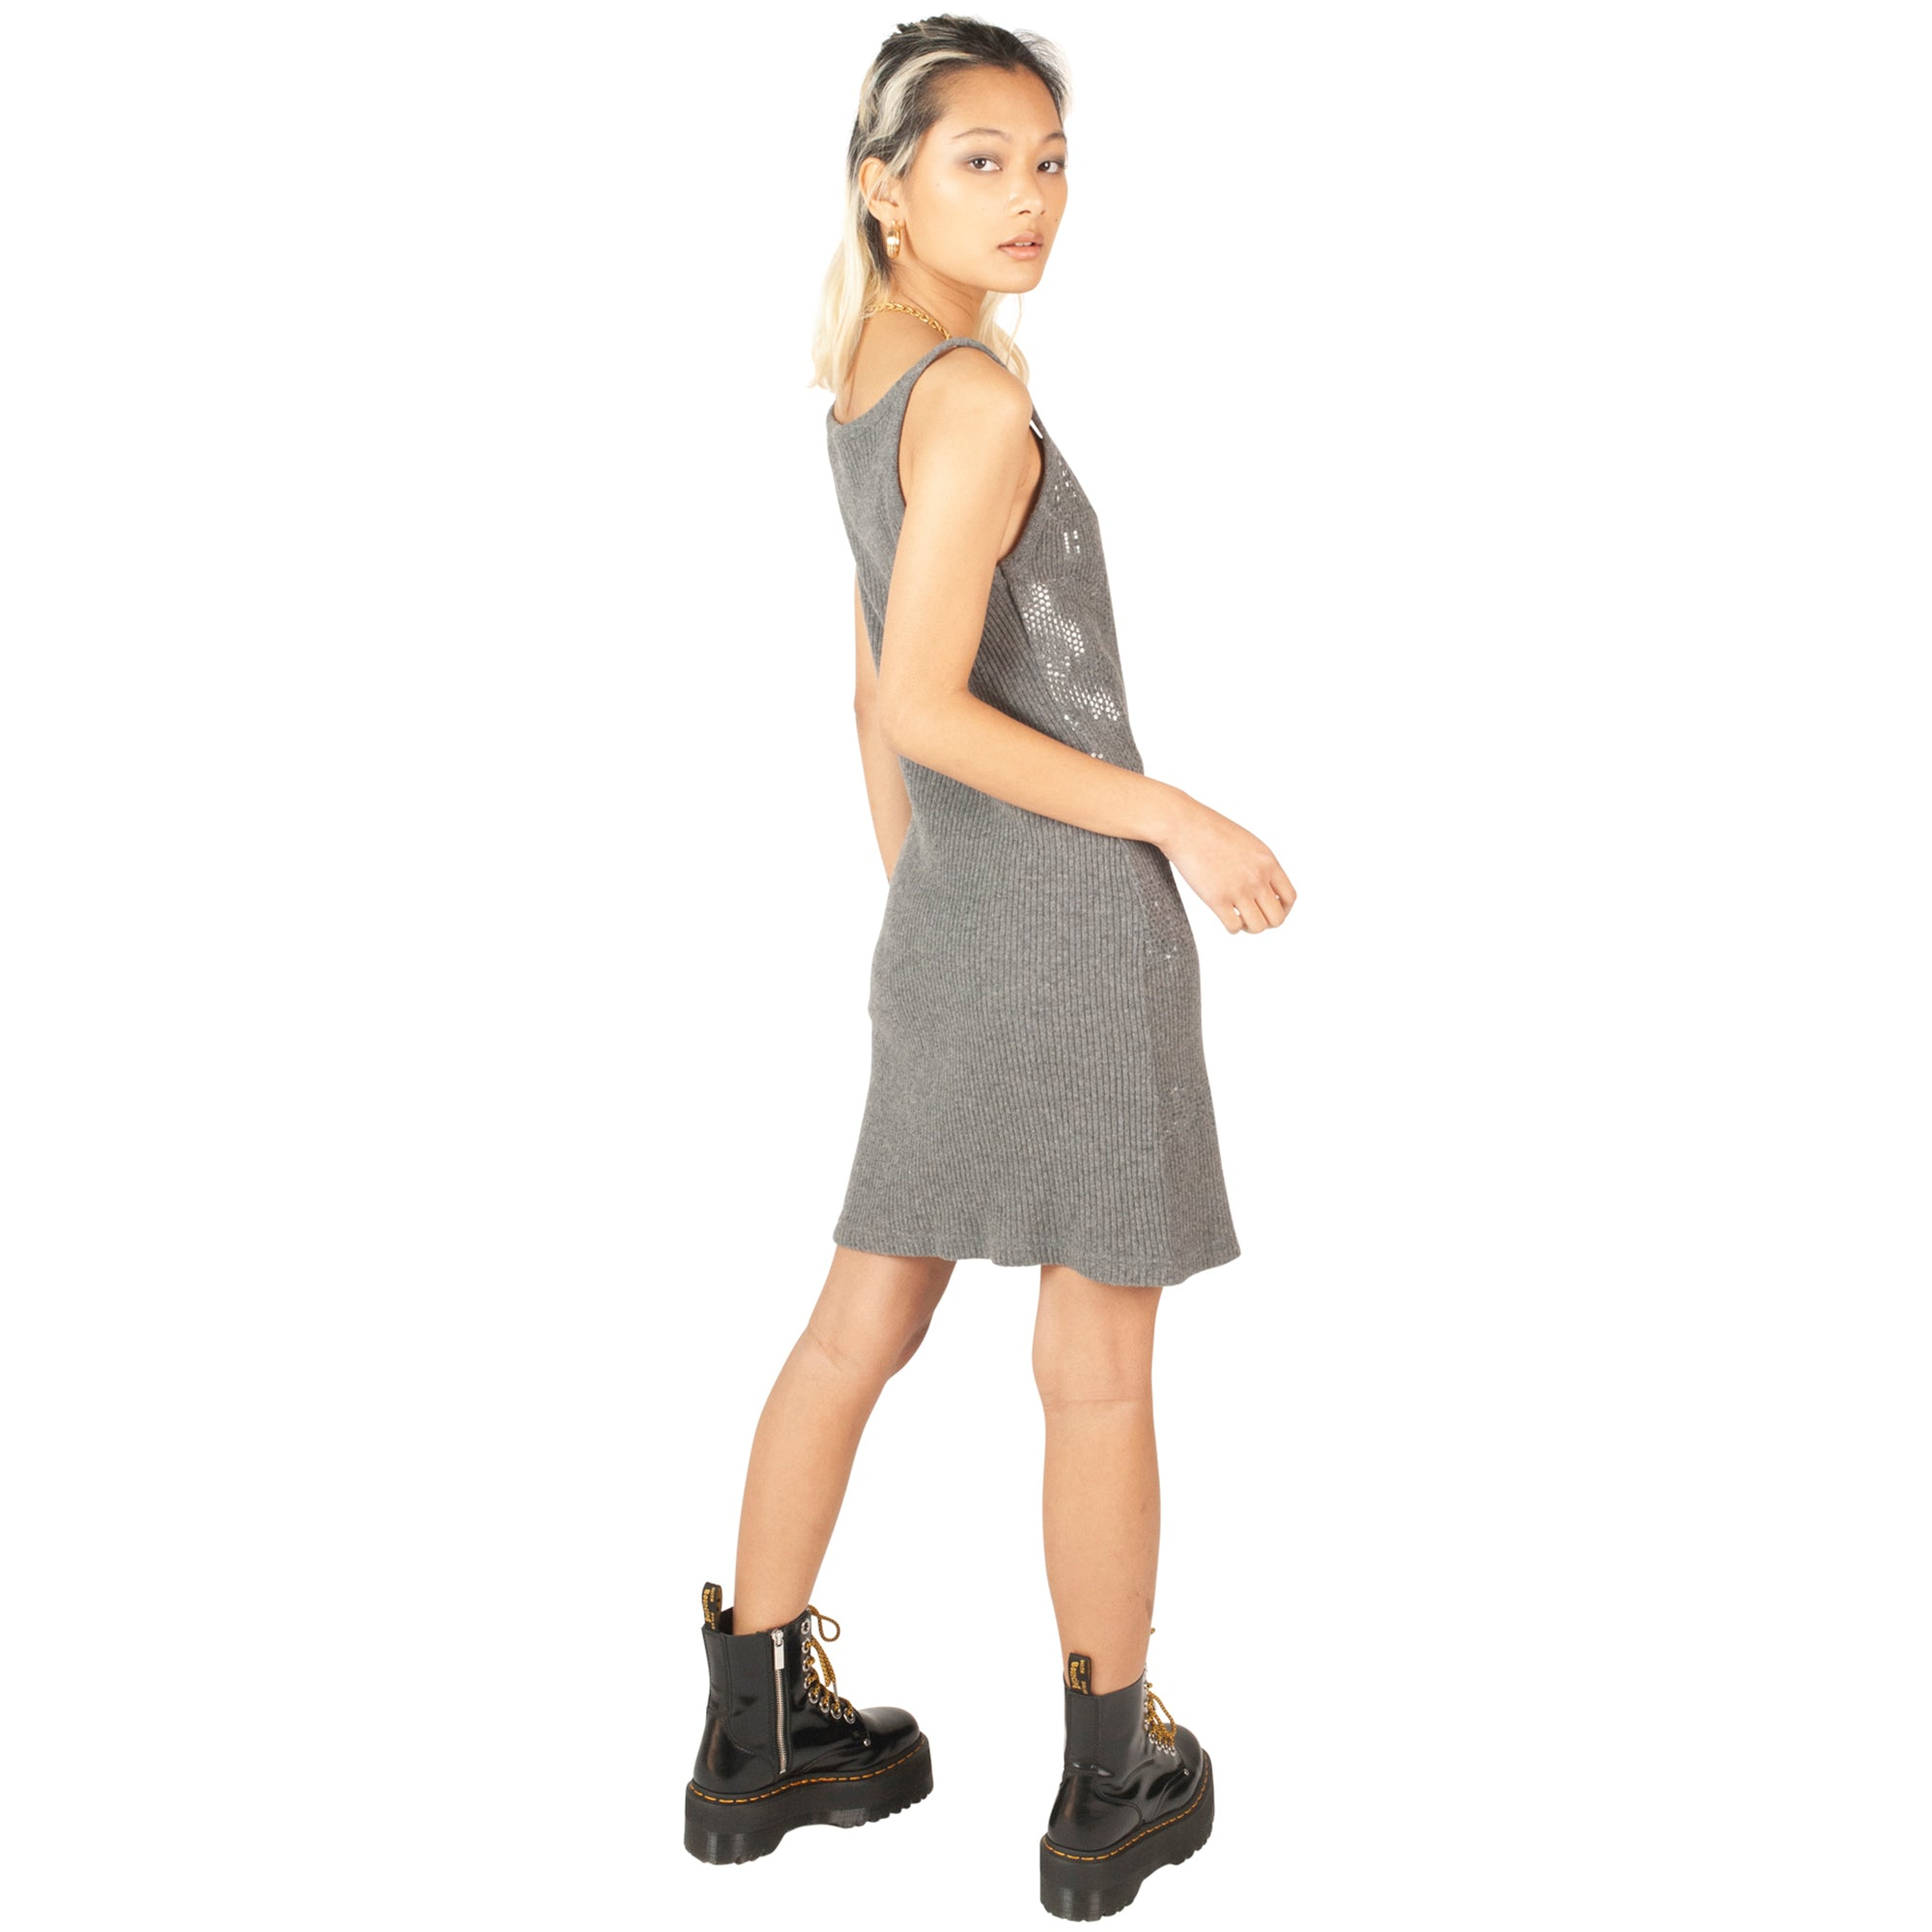 Fendi Shimmer Knit Dress (Grey) UK 6-10